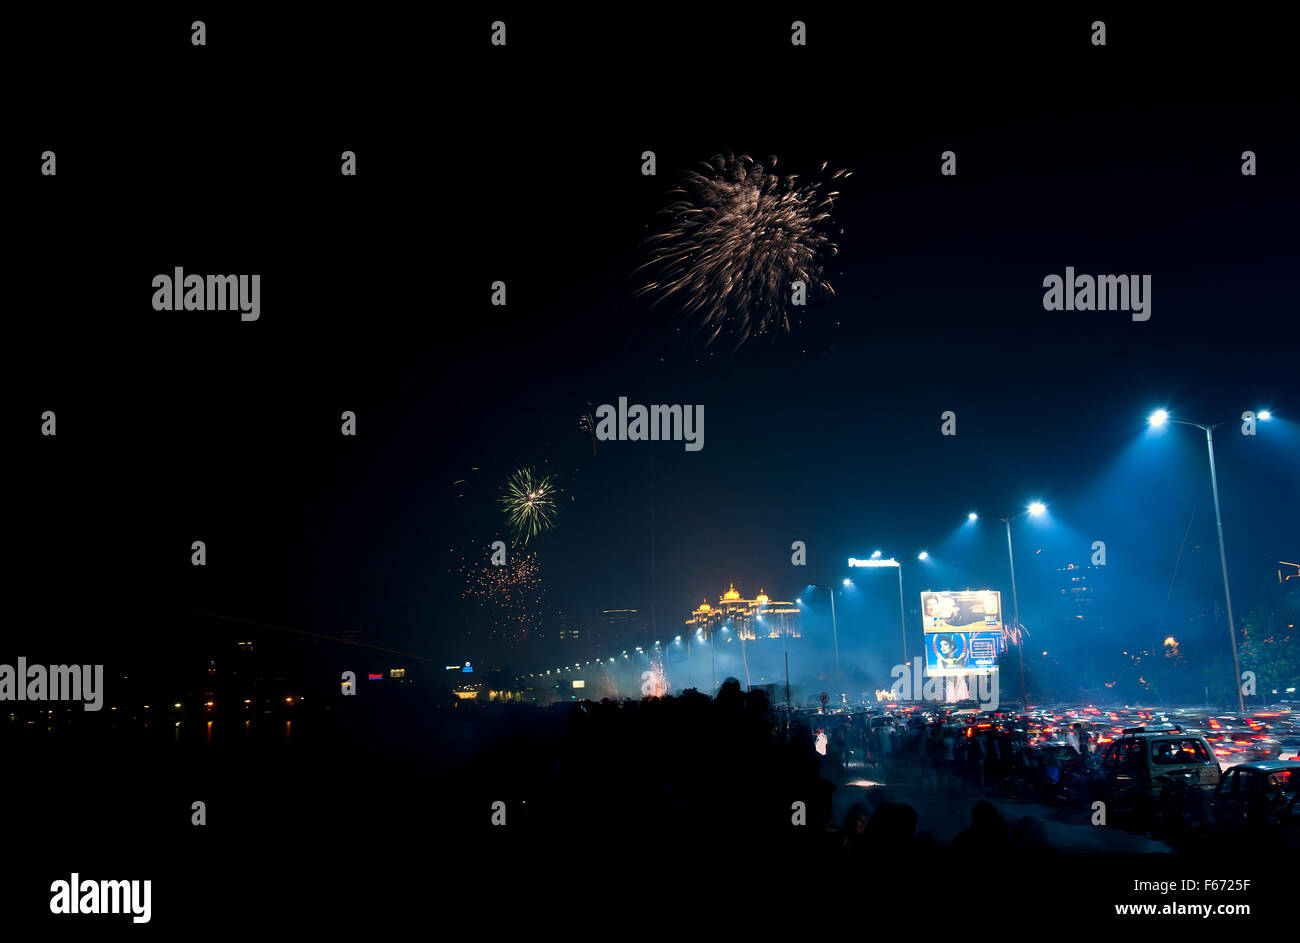 The image of Fire worksof Diwali celebration at Marine drive was taken in Mumbai, India - Stock Image